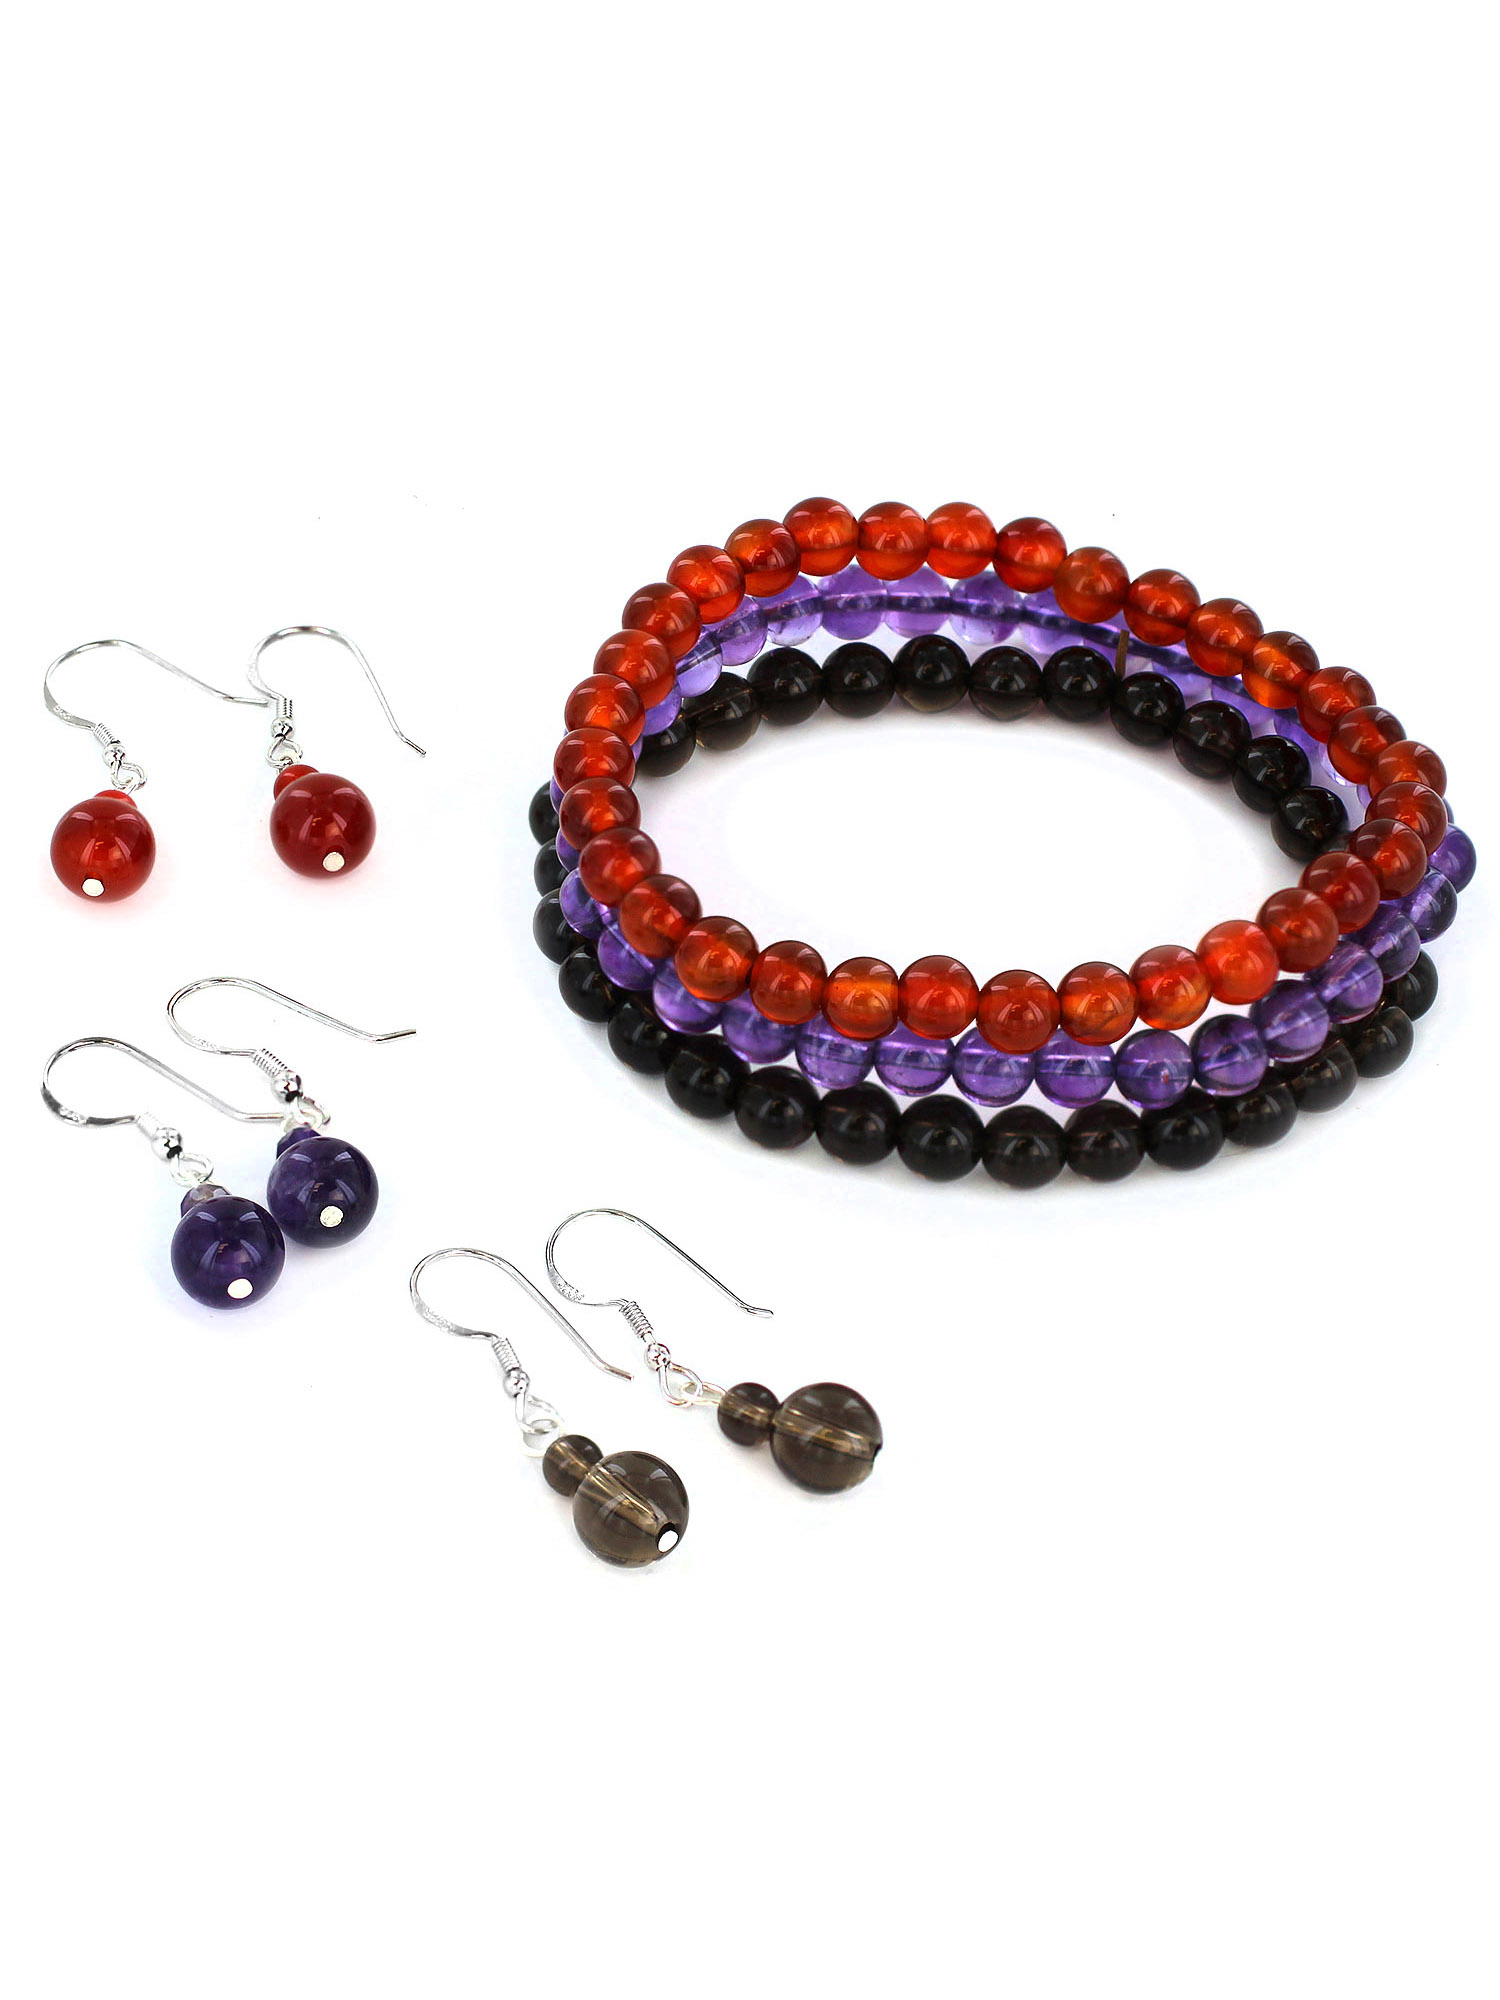 Women's Beaded Bracelet and Earring Set (Set of 3)